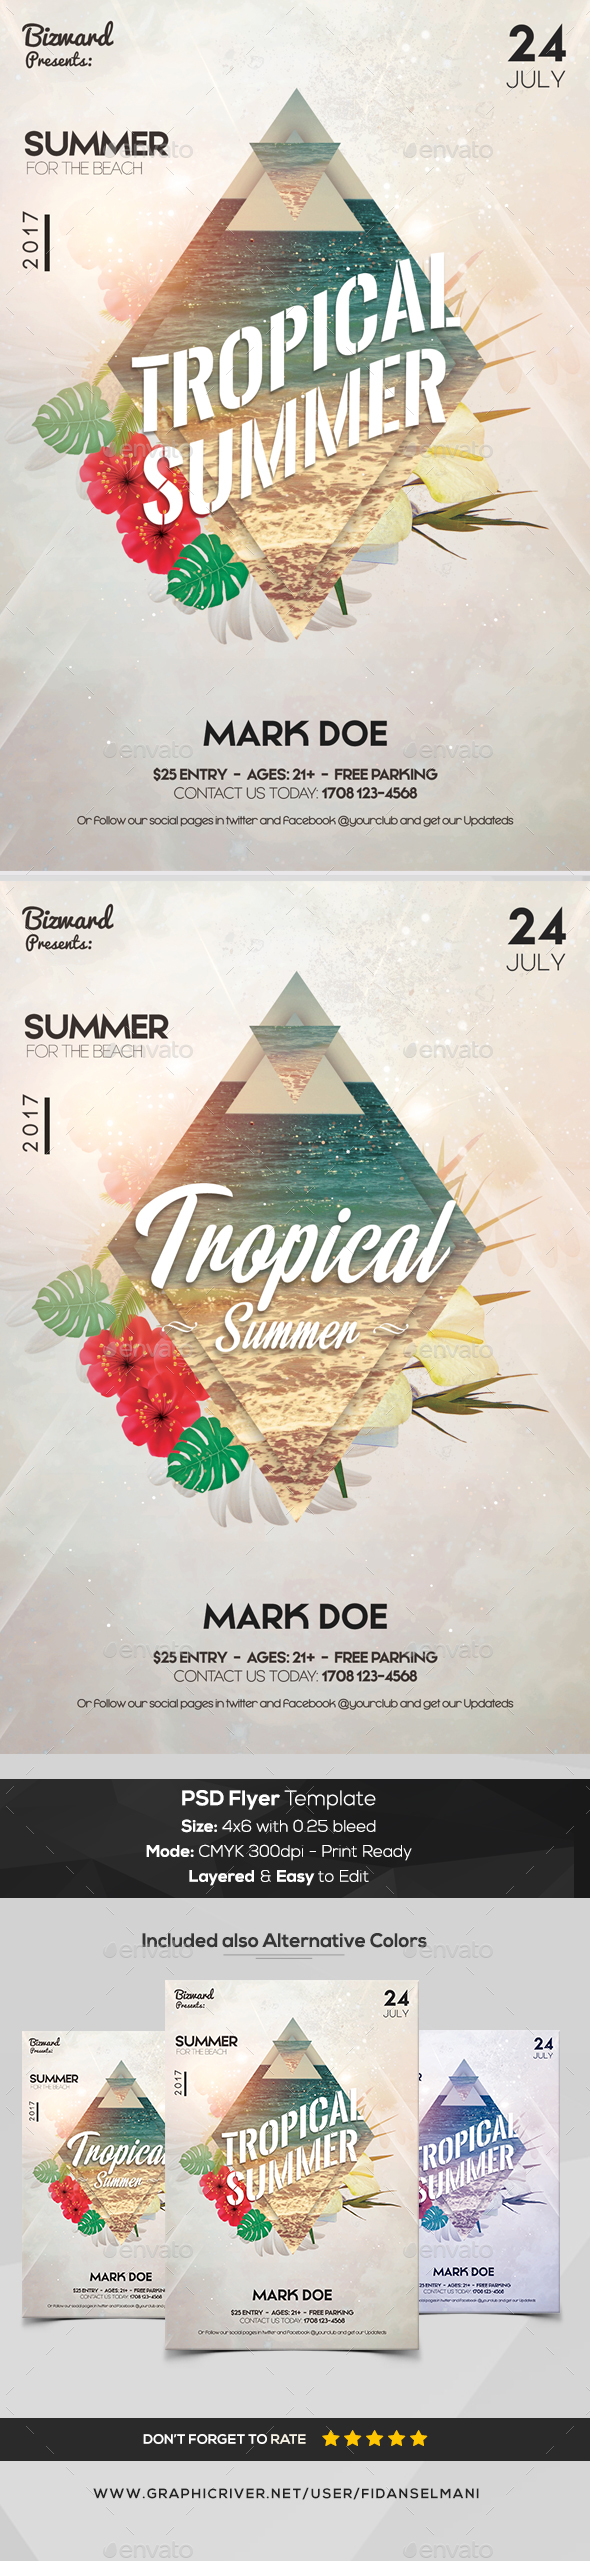 Tropical Summer - PSD Flyer Template - Events Flyers